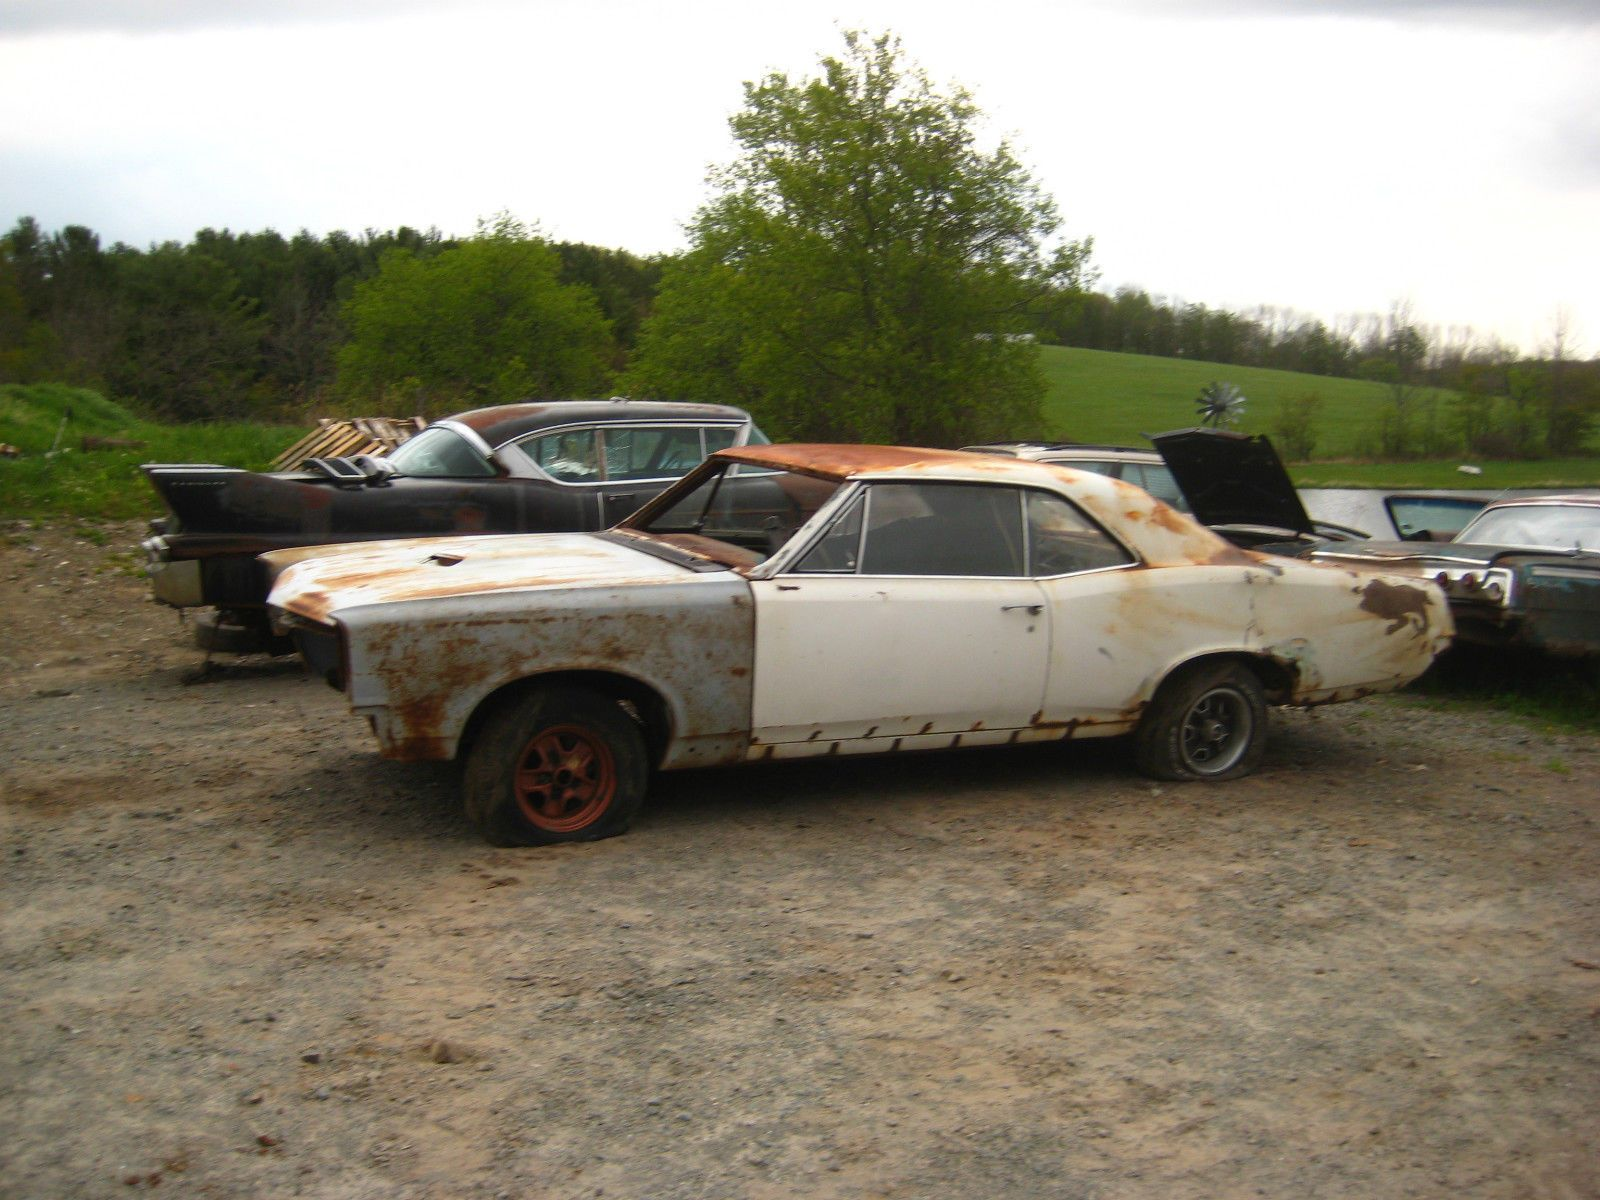 1967 Pontiac Gto 400 Project Car Project Cars For Sale